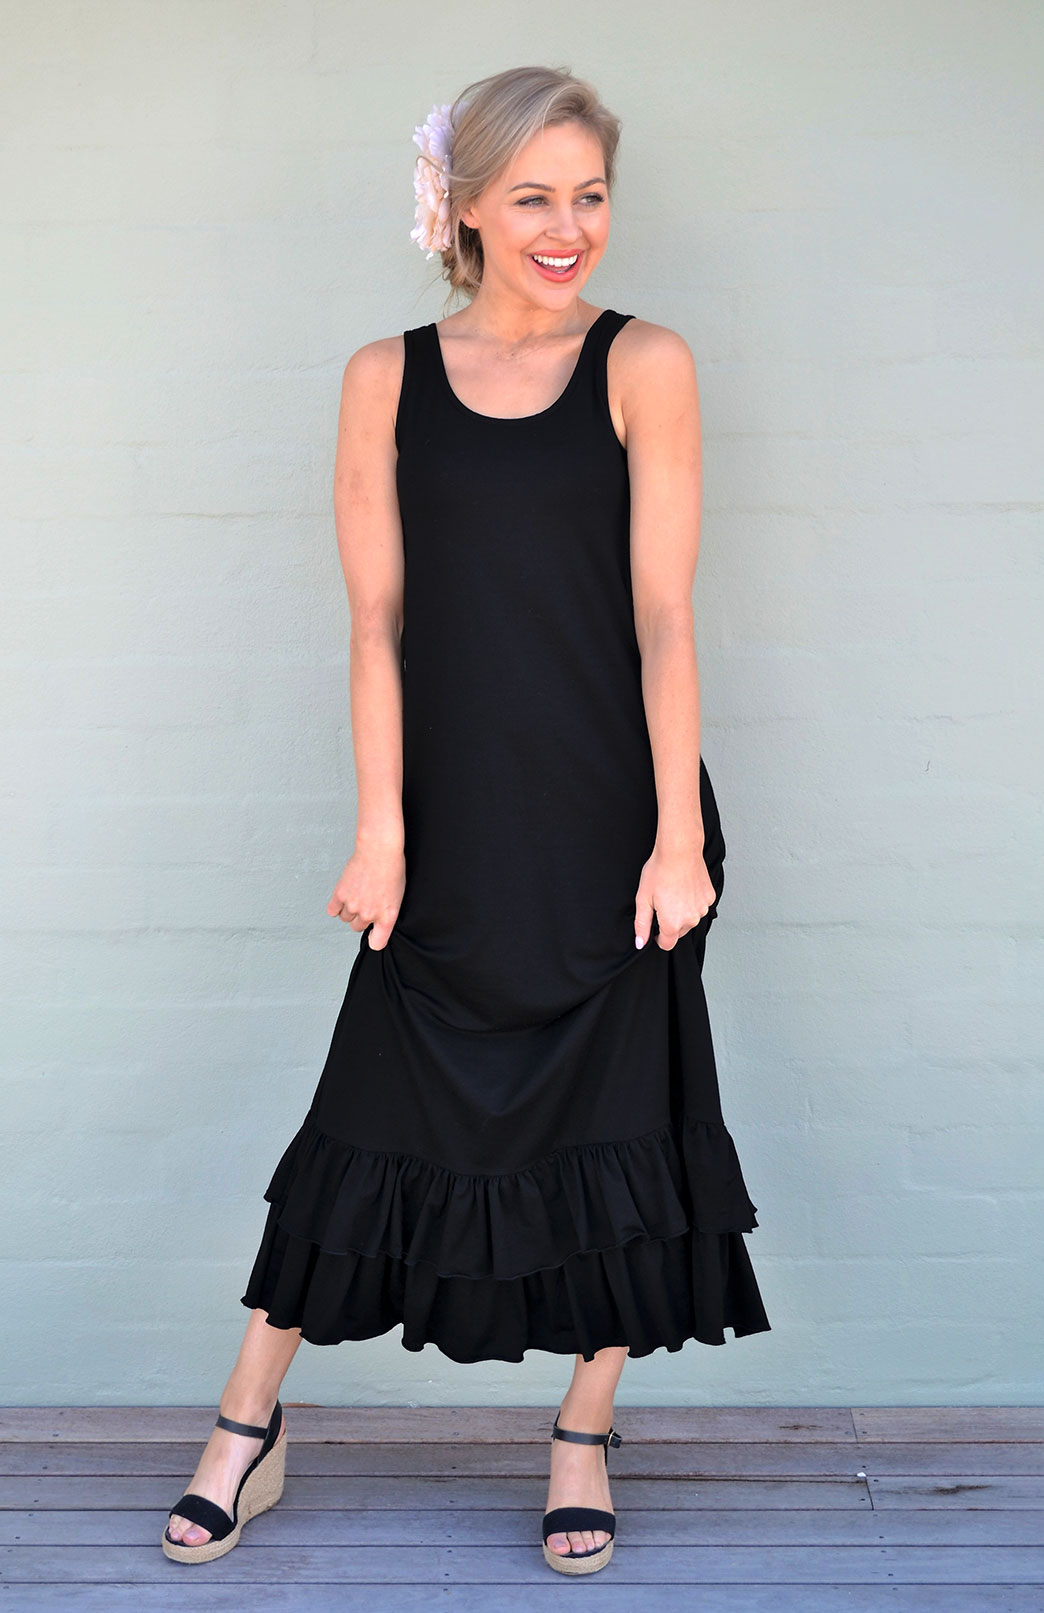 Sofia Maxi Dress - Women's Black Merino Wool Sleeveless Summer Maxi Dress with Ruffle - Smitten Merino Tasmania Australia